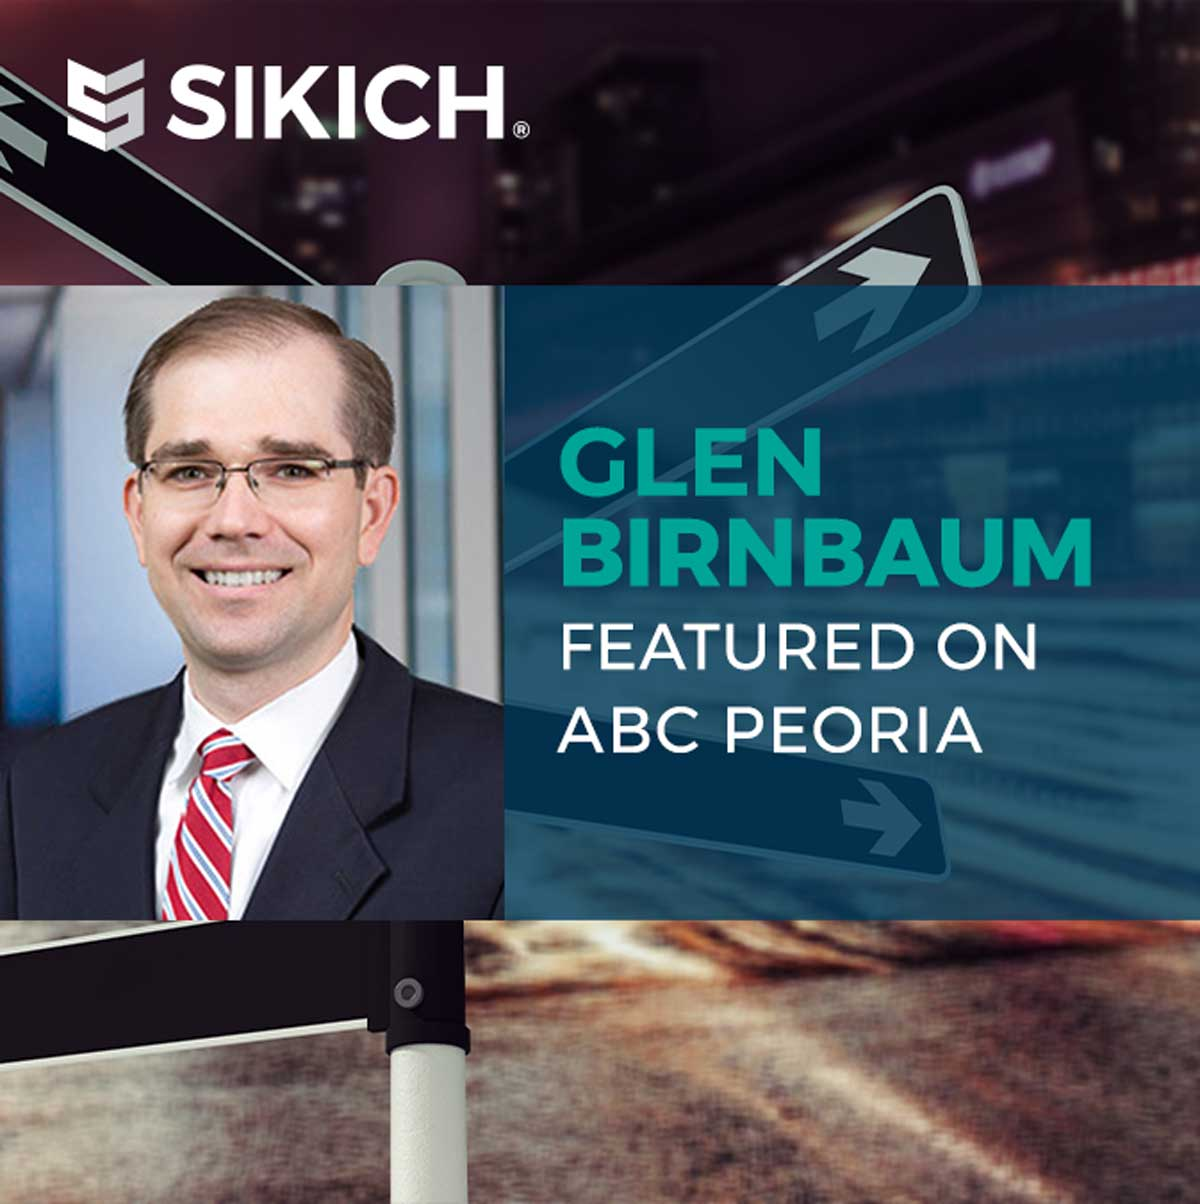 Glen-Birnbaum-Featured-on-ABC-Peoria